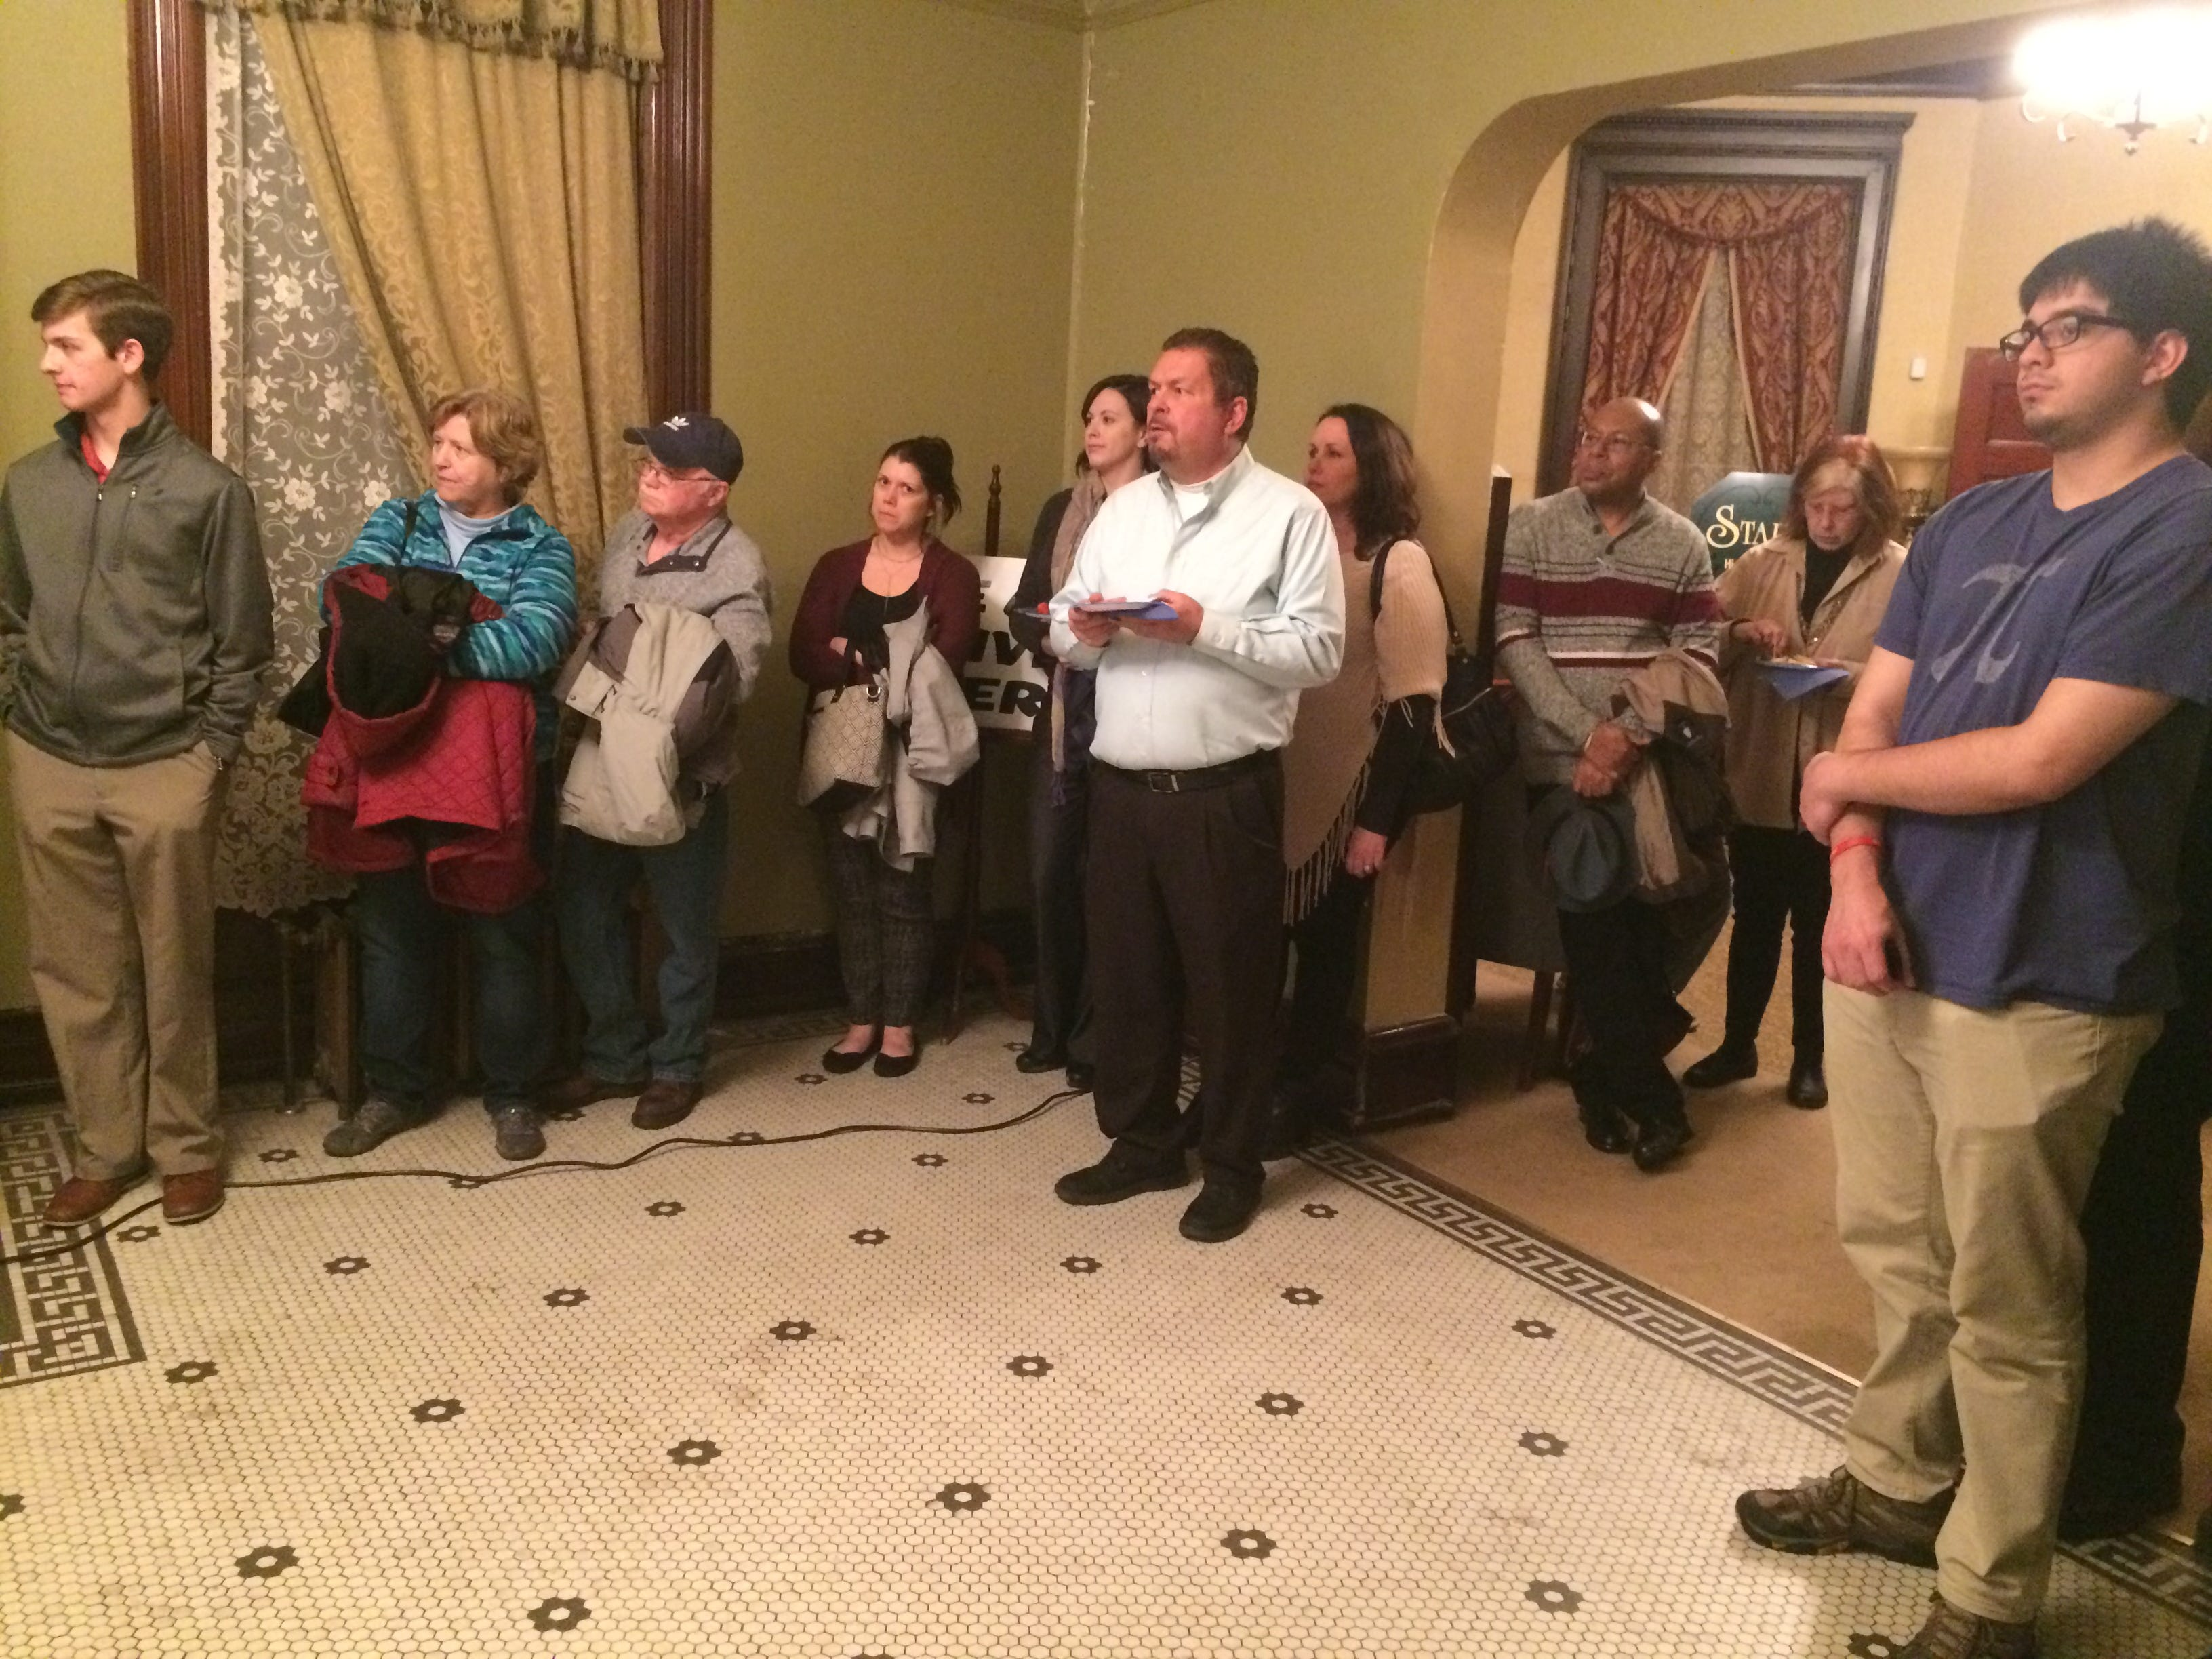 Attendees listen to Jack Cruse during his kickoff event Wednesday night for his mayoral campaign.